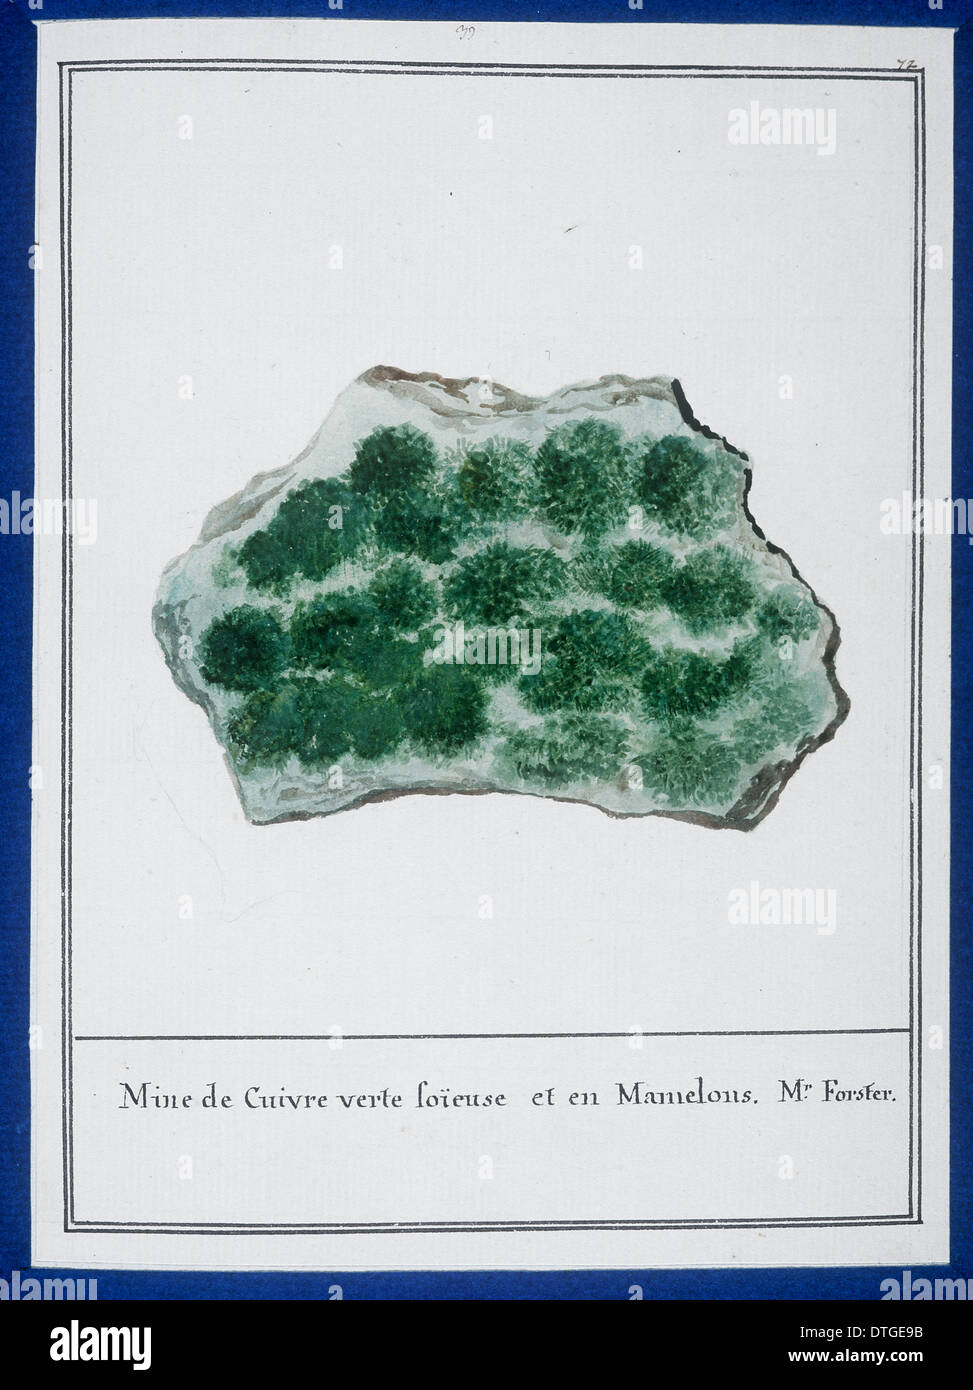 Plate 35 from Mineralogie by Swebach Desfontaines - Stock Image